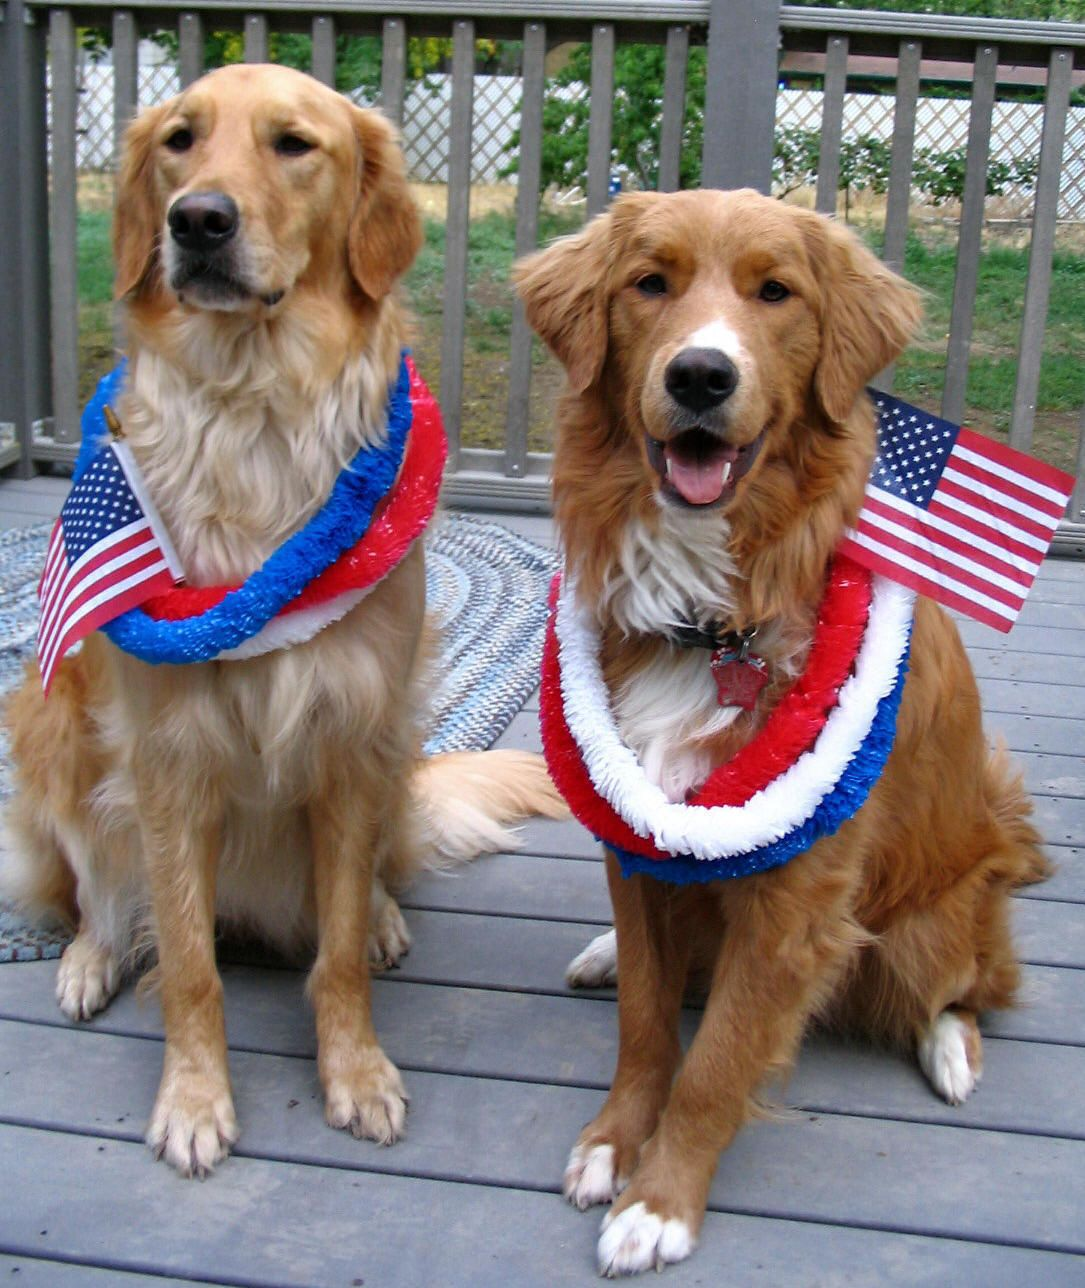 Northern California Rv Camping 49er Village Rv Resort Patriotic Pets Pet Holiday Patriotic Pooch